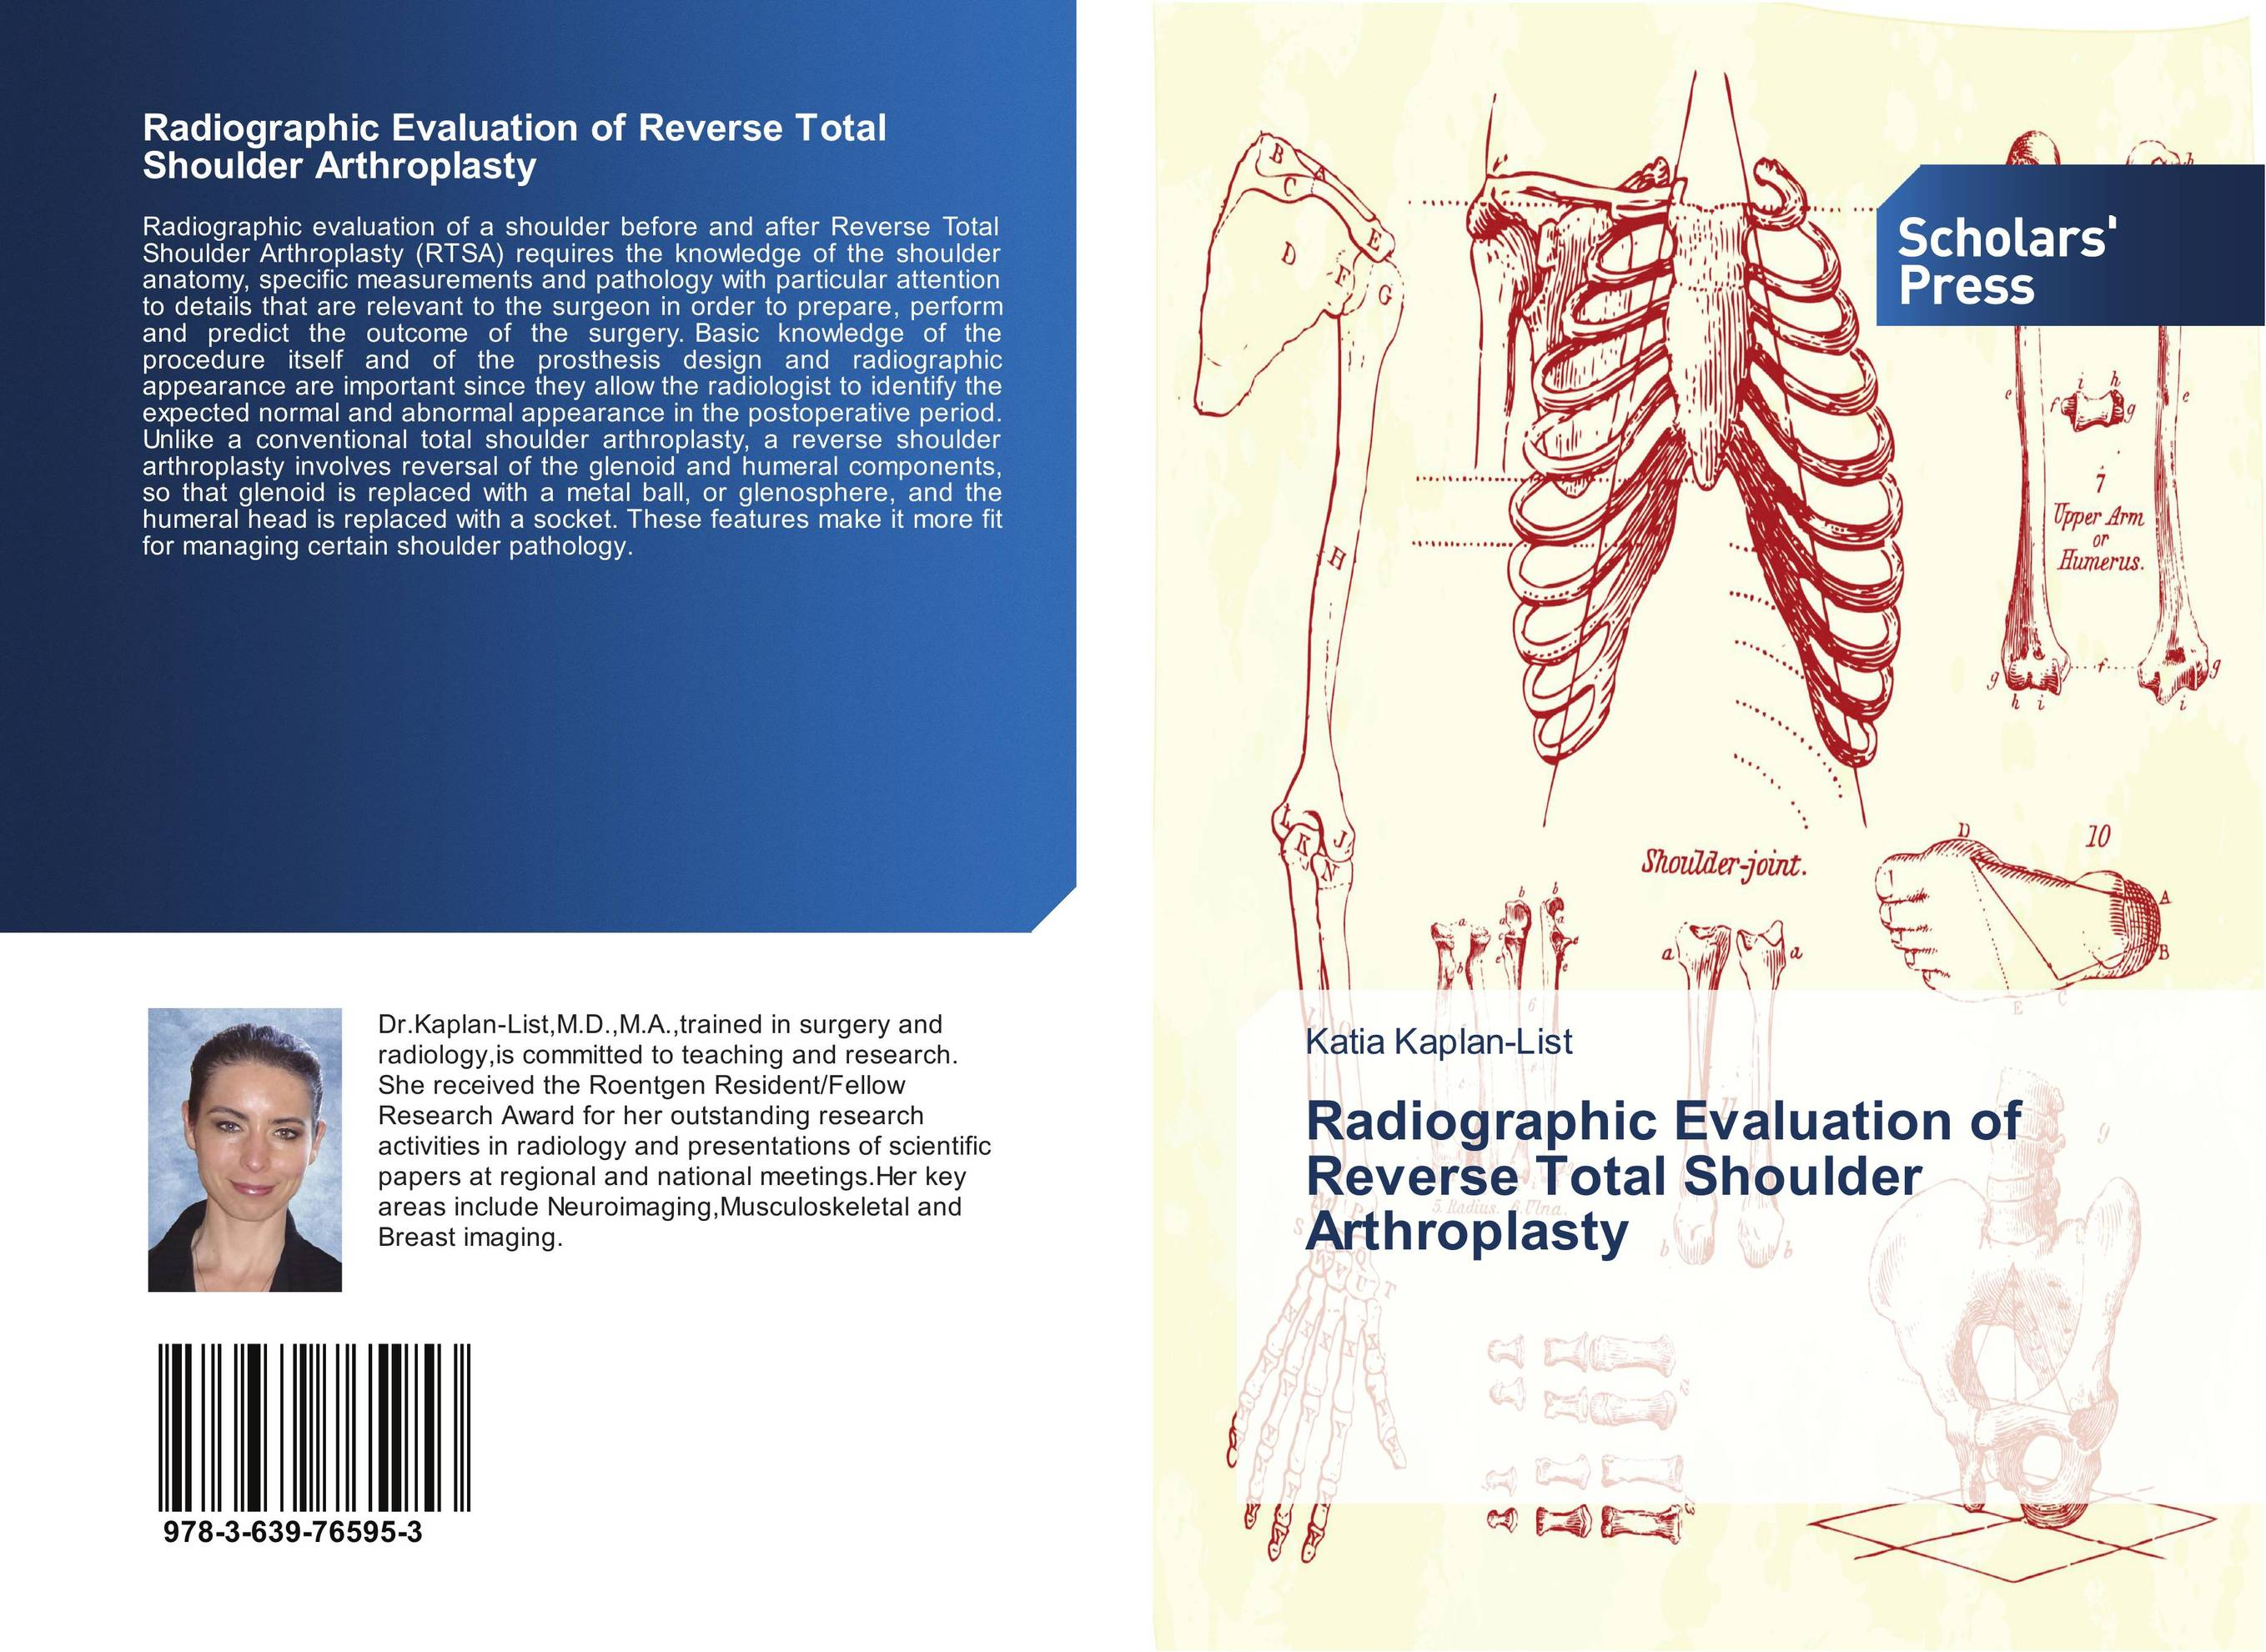 Radiographic Evaluation of Reverse Total Shoulder Arthroplasty managing the store